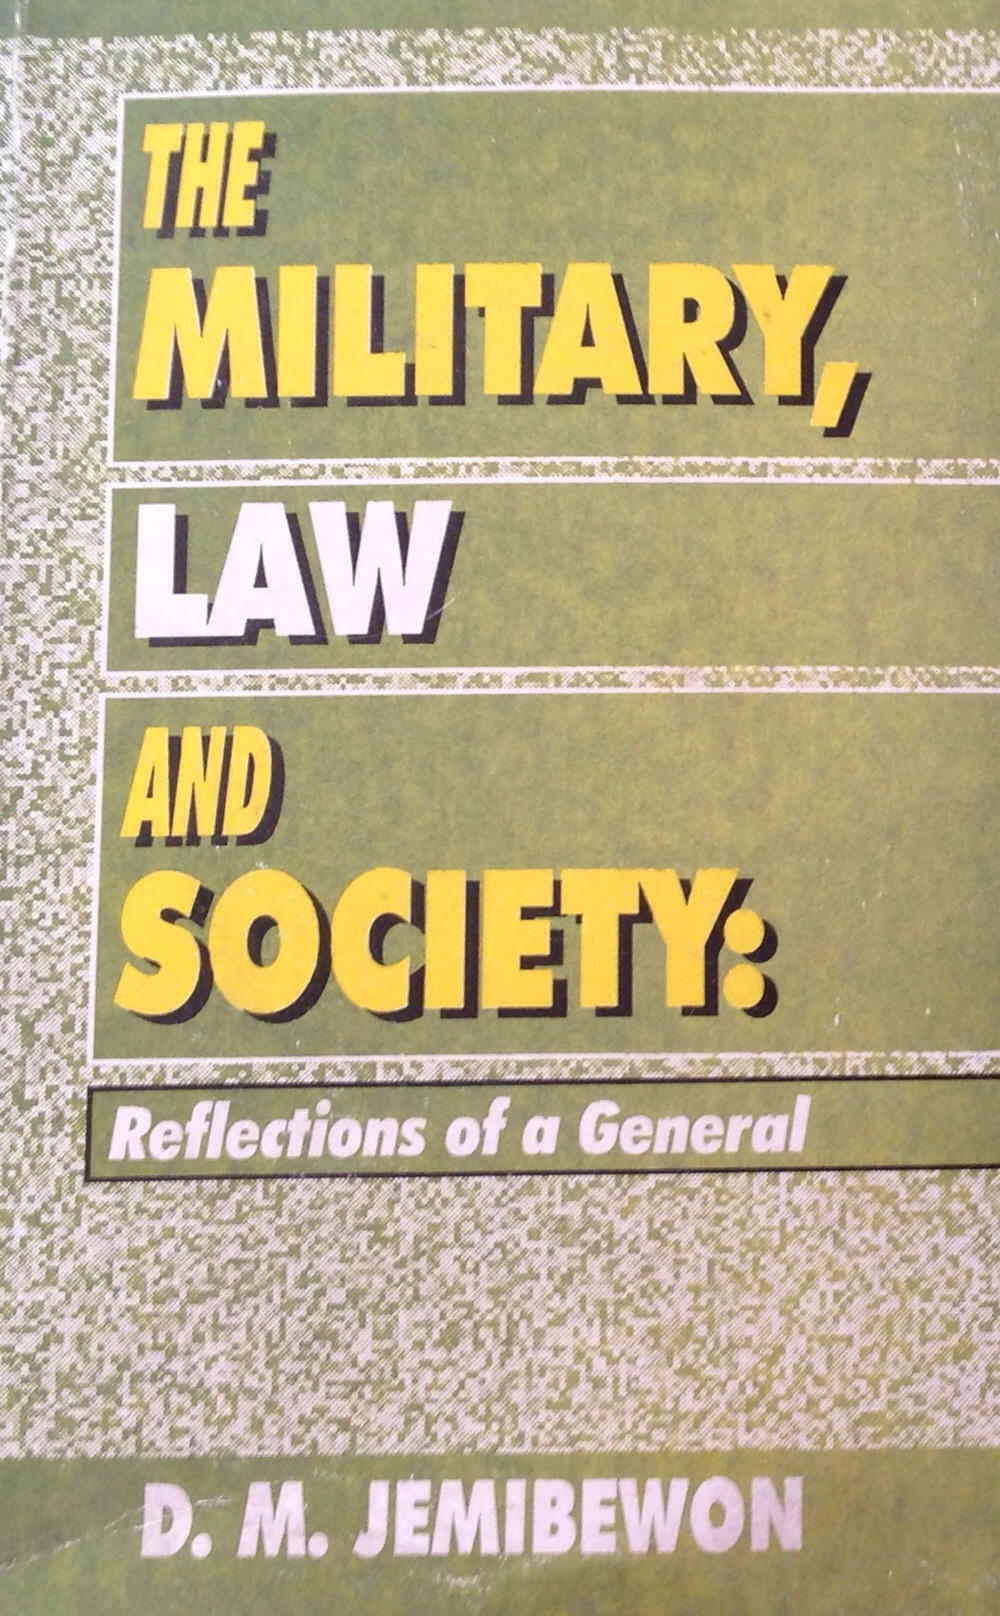 The Military, Law And Society